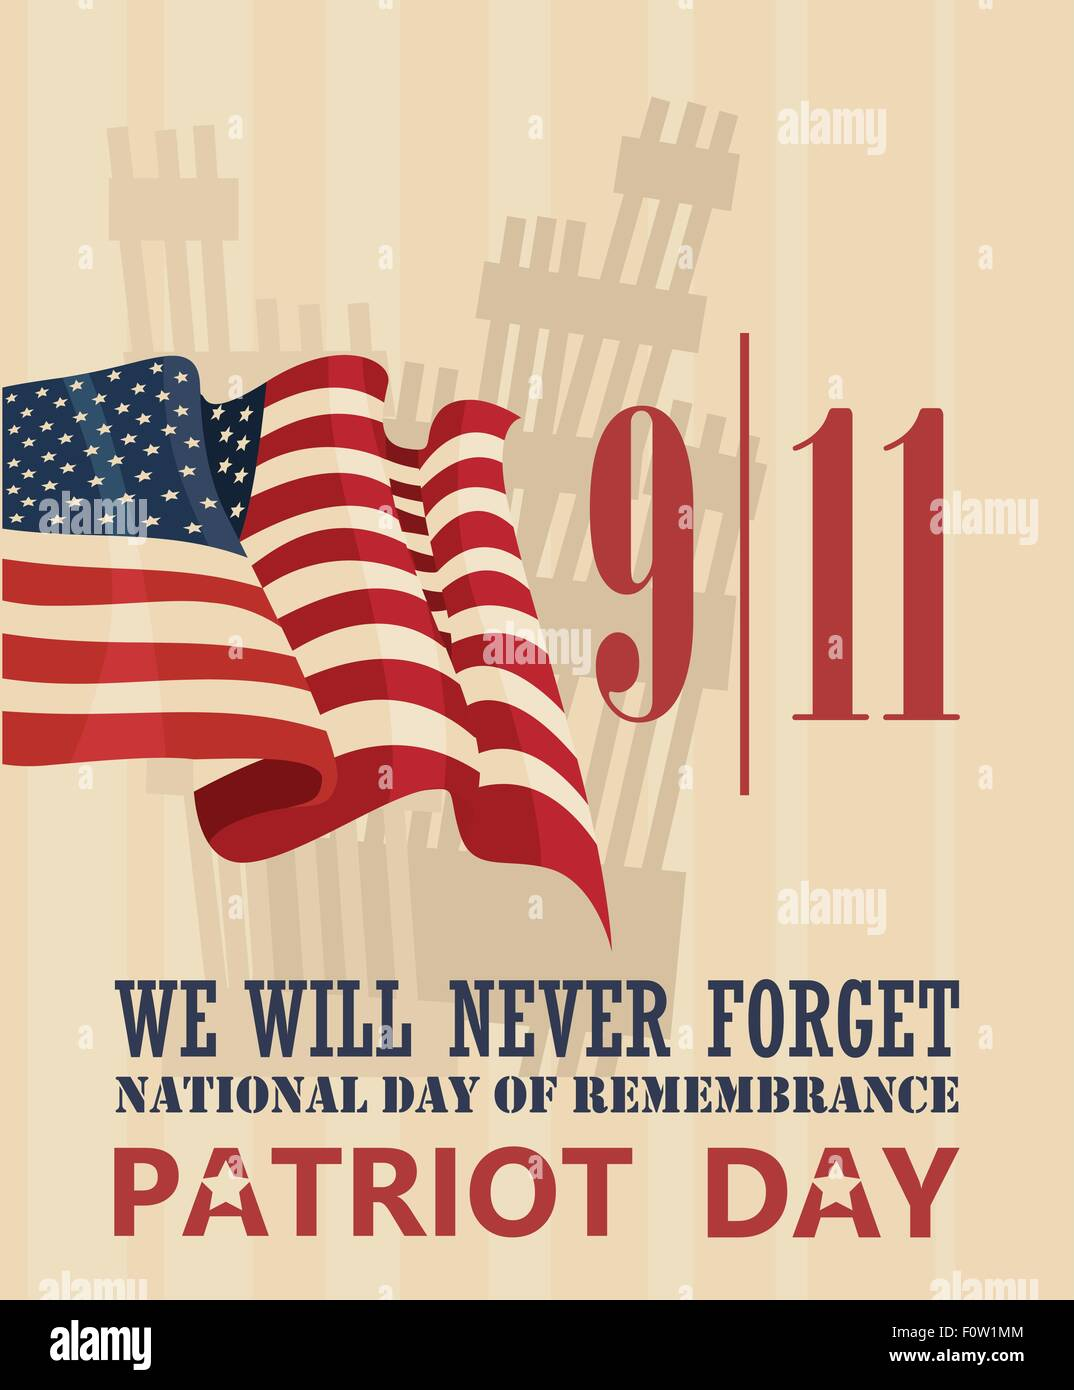 9/11 Patriot Day, September 11. Never Forget. National day of remembrance. - Stock Image